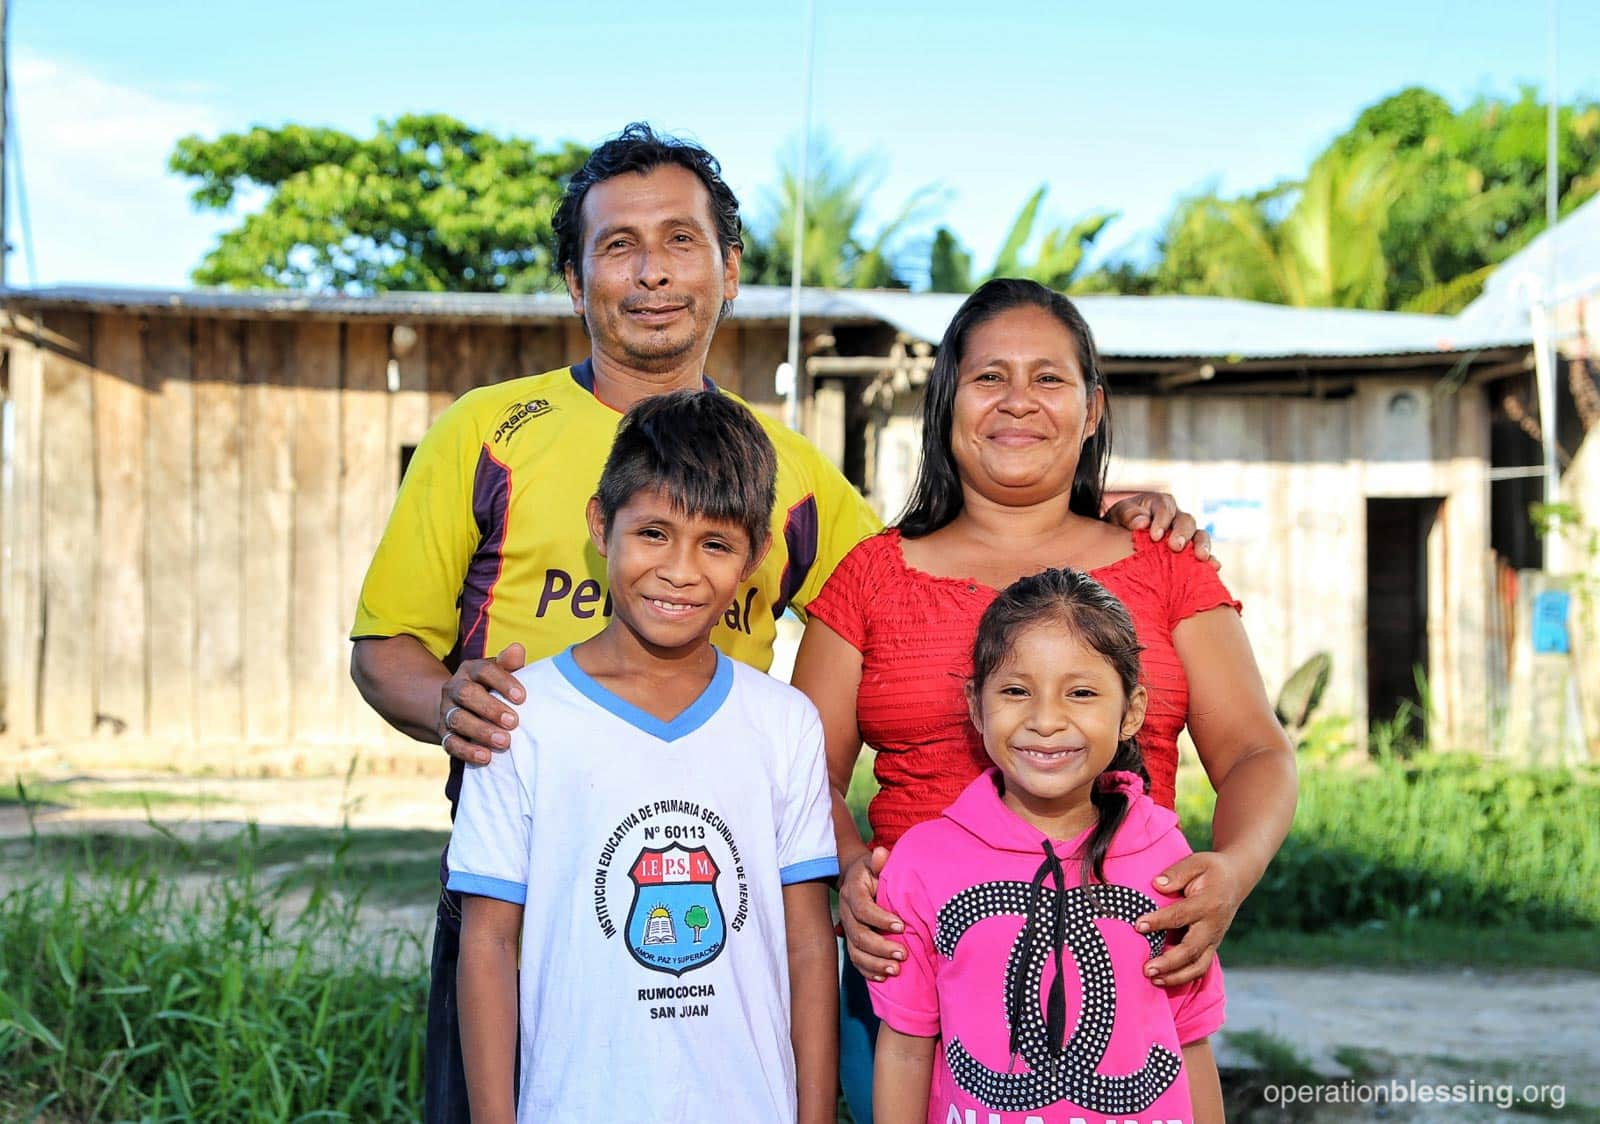 Elizabeth and Andres, pictured with two of their three children, are grateful for the education and practical gift of a chicken coop to care for and profit from.